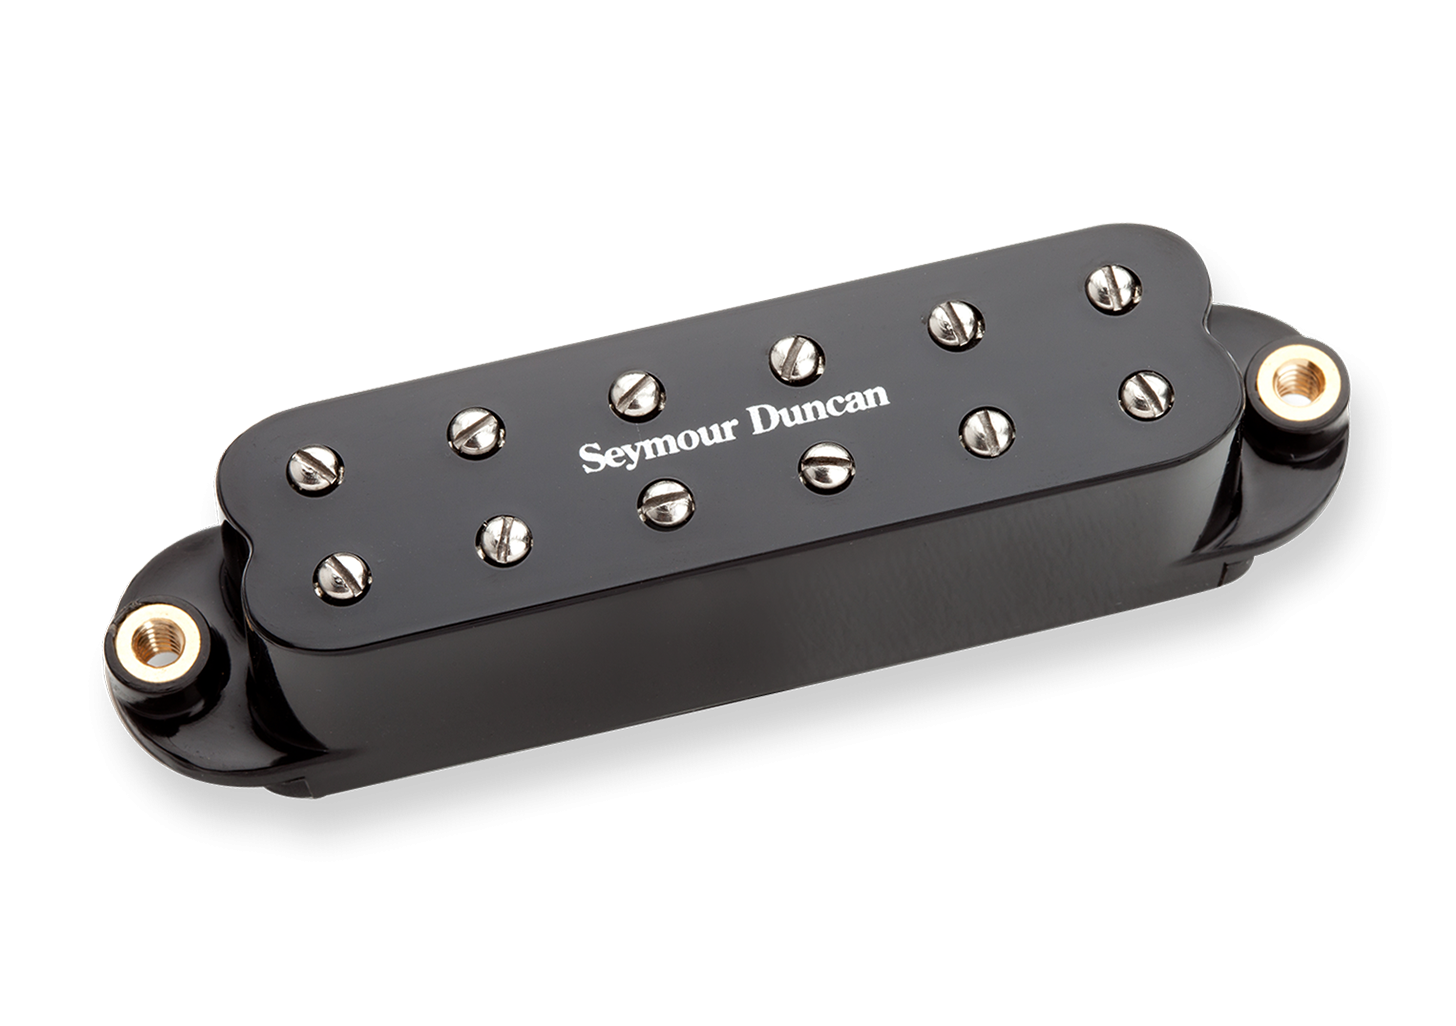 Seymour Duncan Little '59 Strat SL59-1B Bridge Black